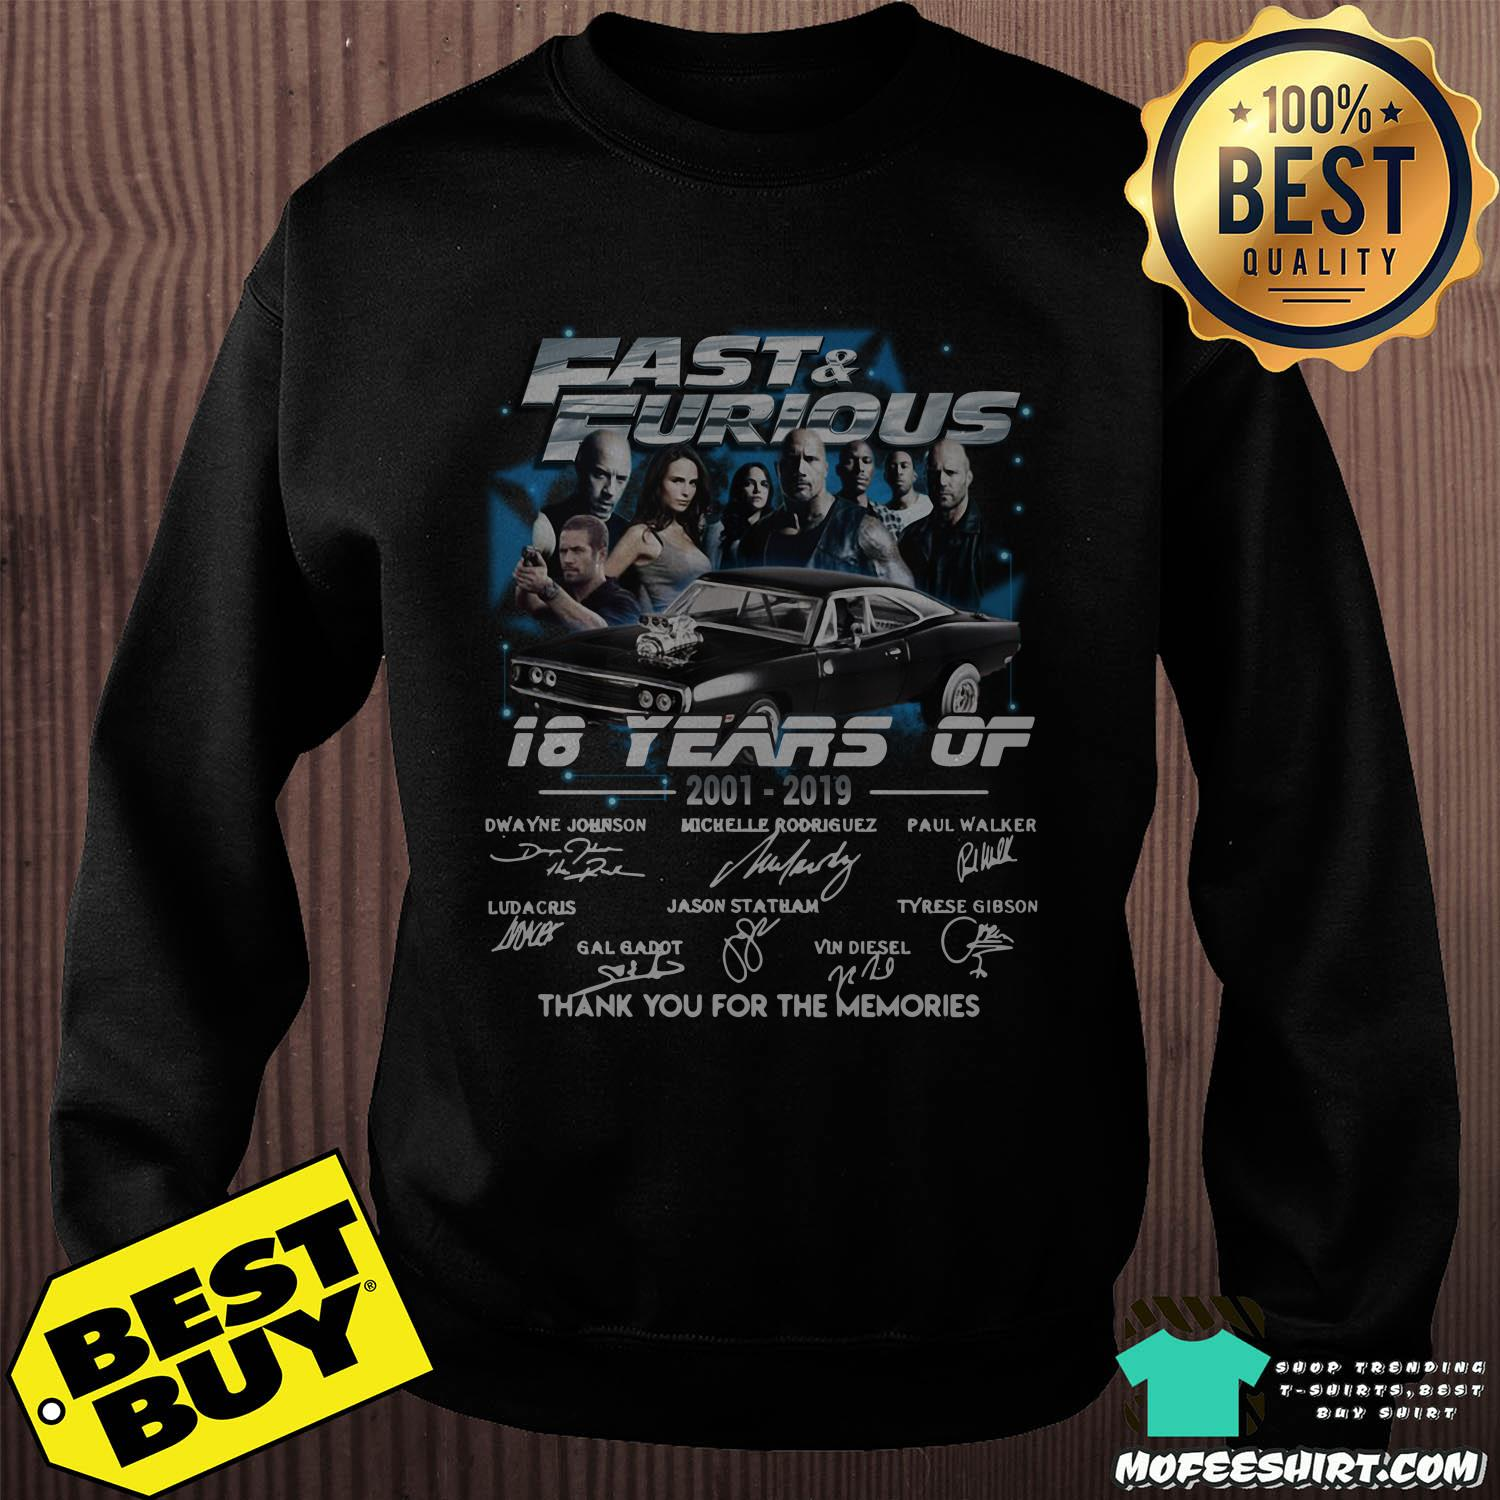 fast and furious 18 years of 2001 2019 thank you for the memories signature sweatshirt sweater - Fast And Furious 18 Years Of 2001-2019 Thank You For The Memories Signature Shirt Sweater